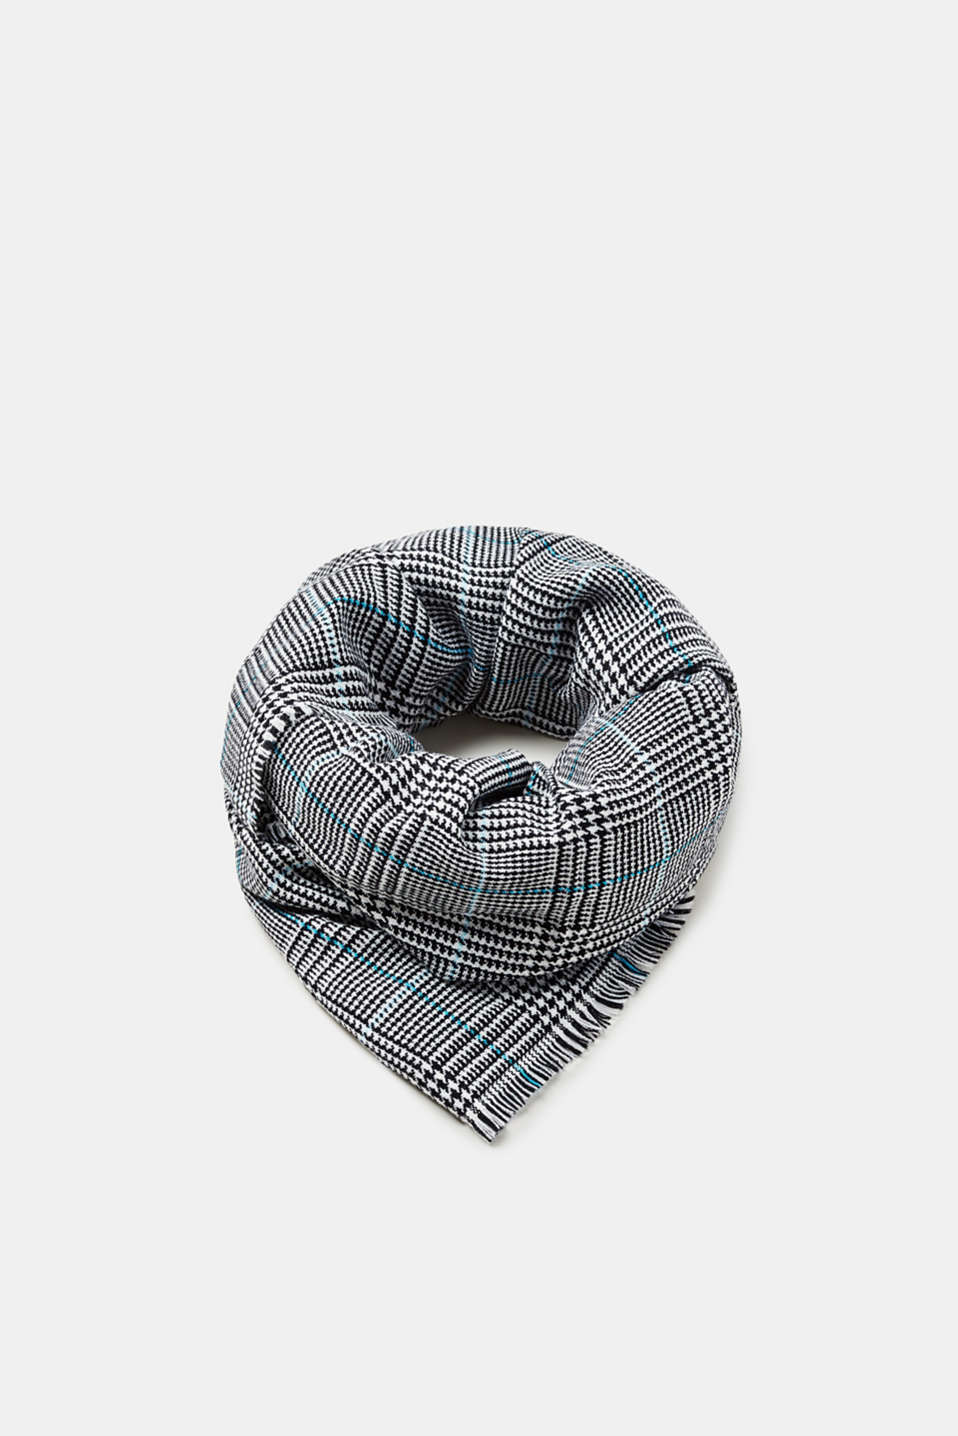 Esprit - Colourful woven scarf in Prince of Wales check